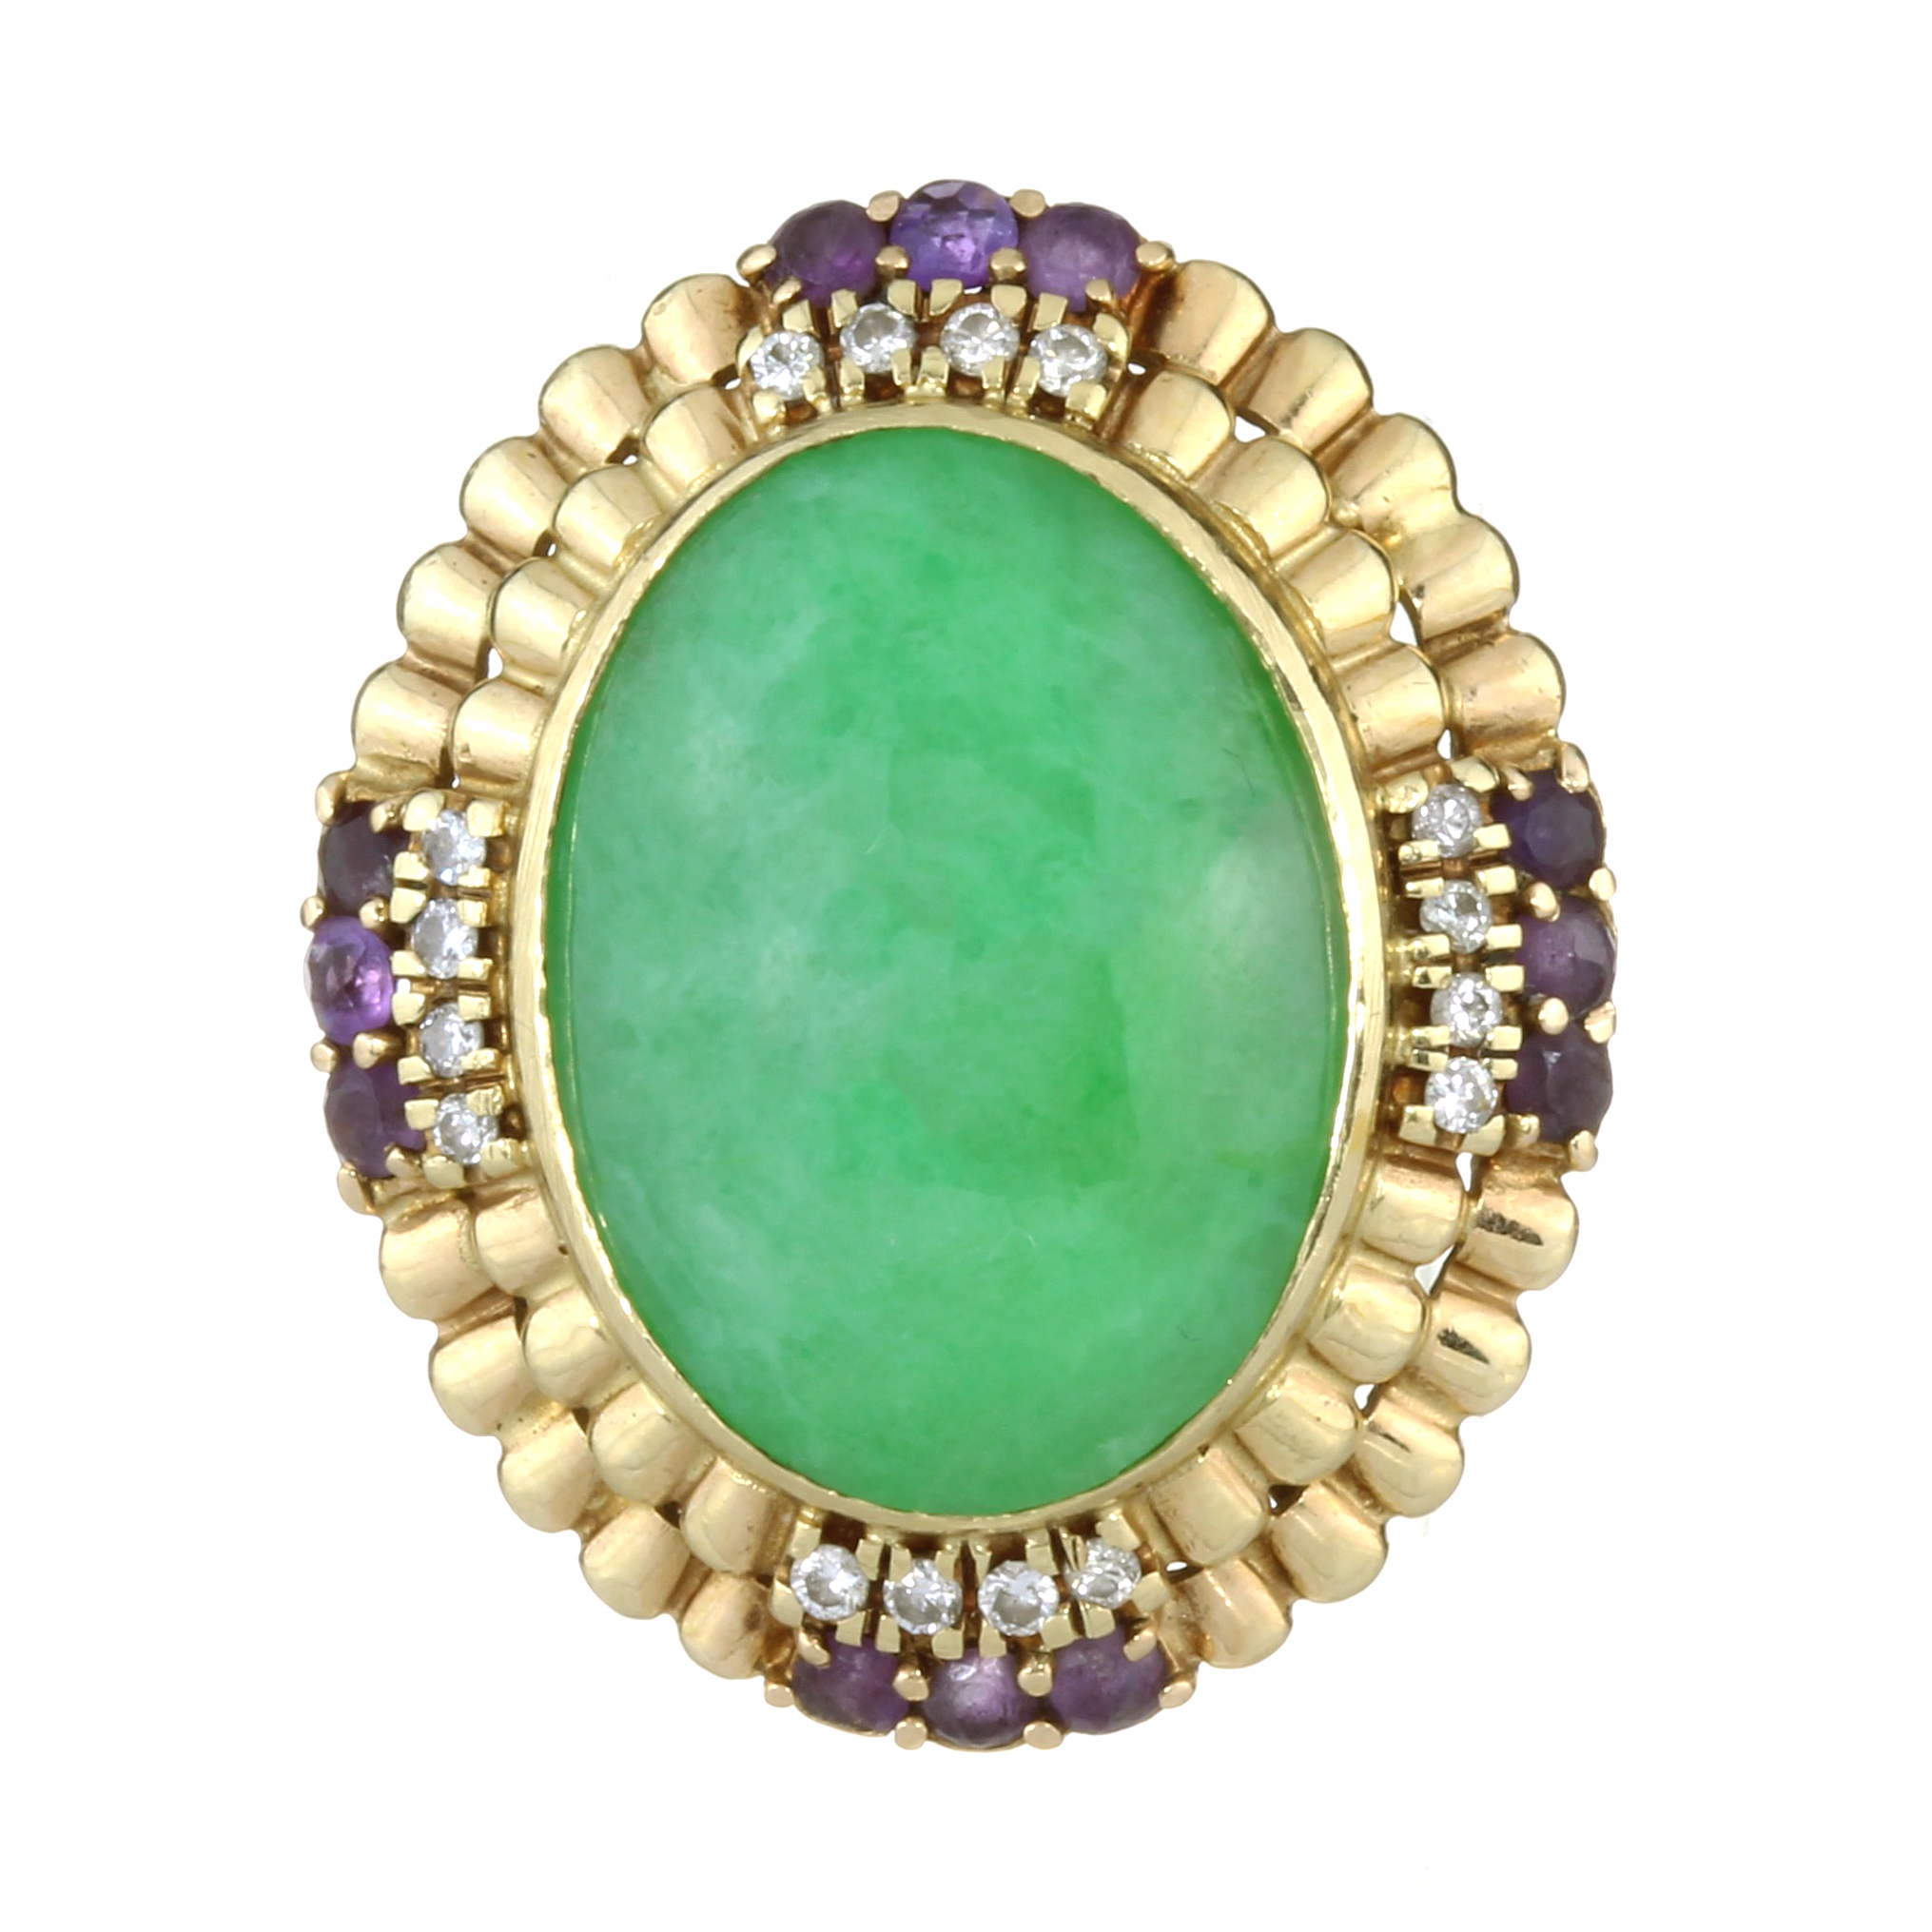 A JADEITE JADE, AMETHYST AND DIAMOND RING in yellow gold set with a large oval jade cabochon of 20.